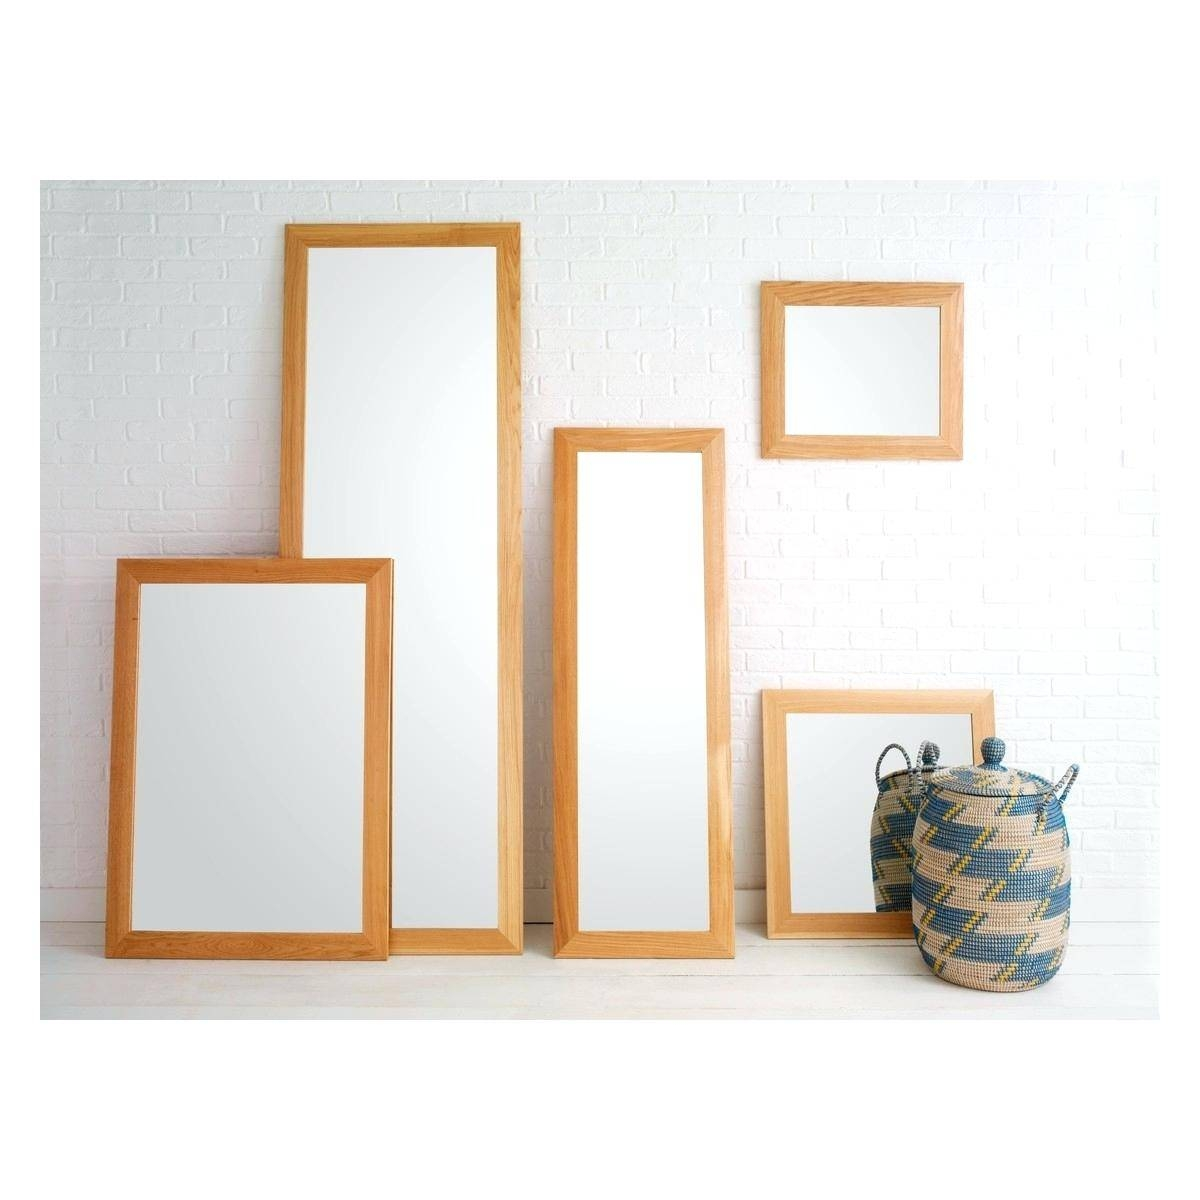 Wooden Full Length Mirroroak Framed Wall Mirror Oak – Shopwiz throughout Large Oak Framed Mirrors (Image 25 of 25)